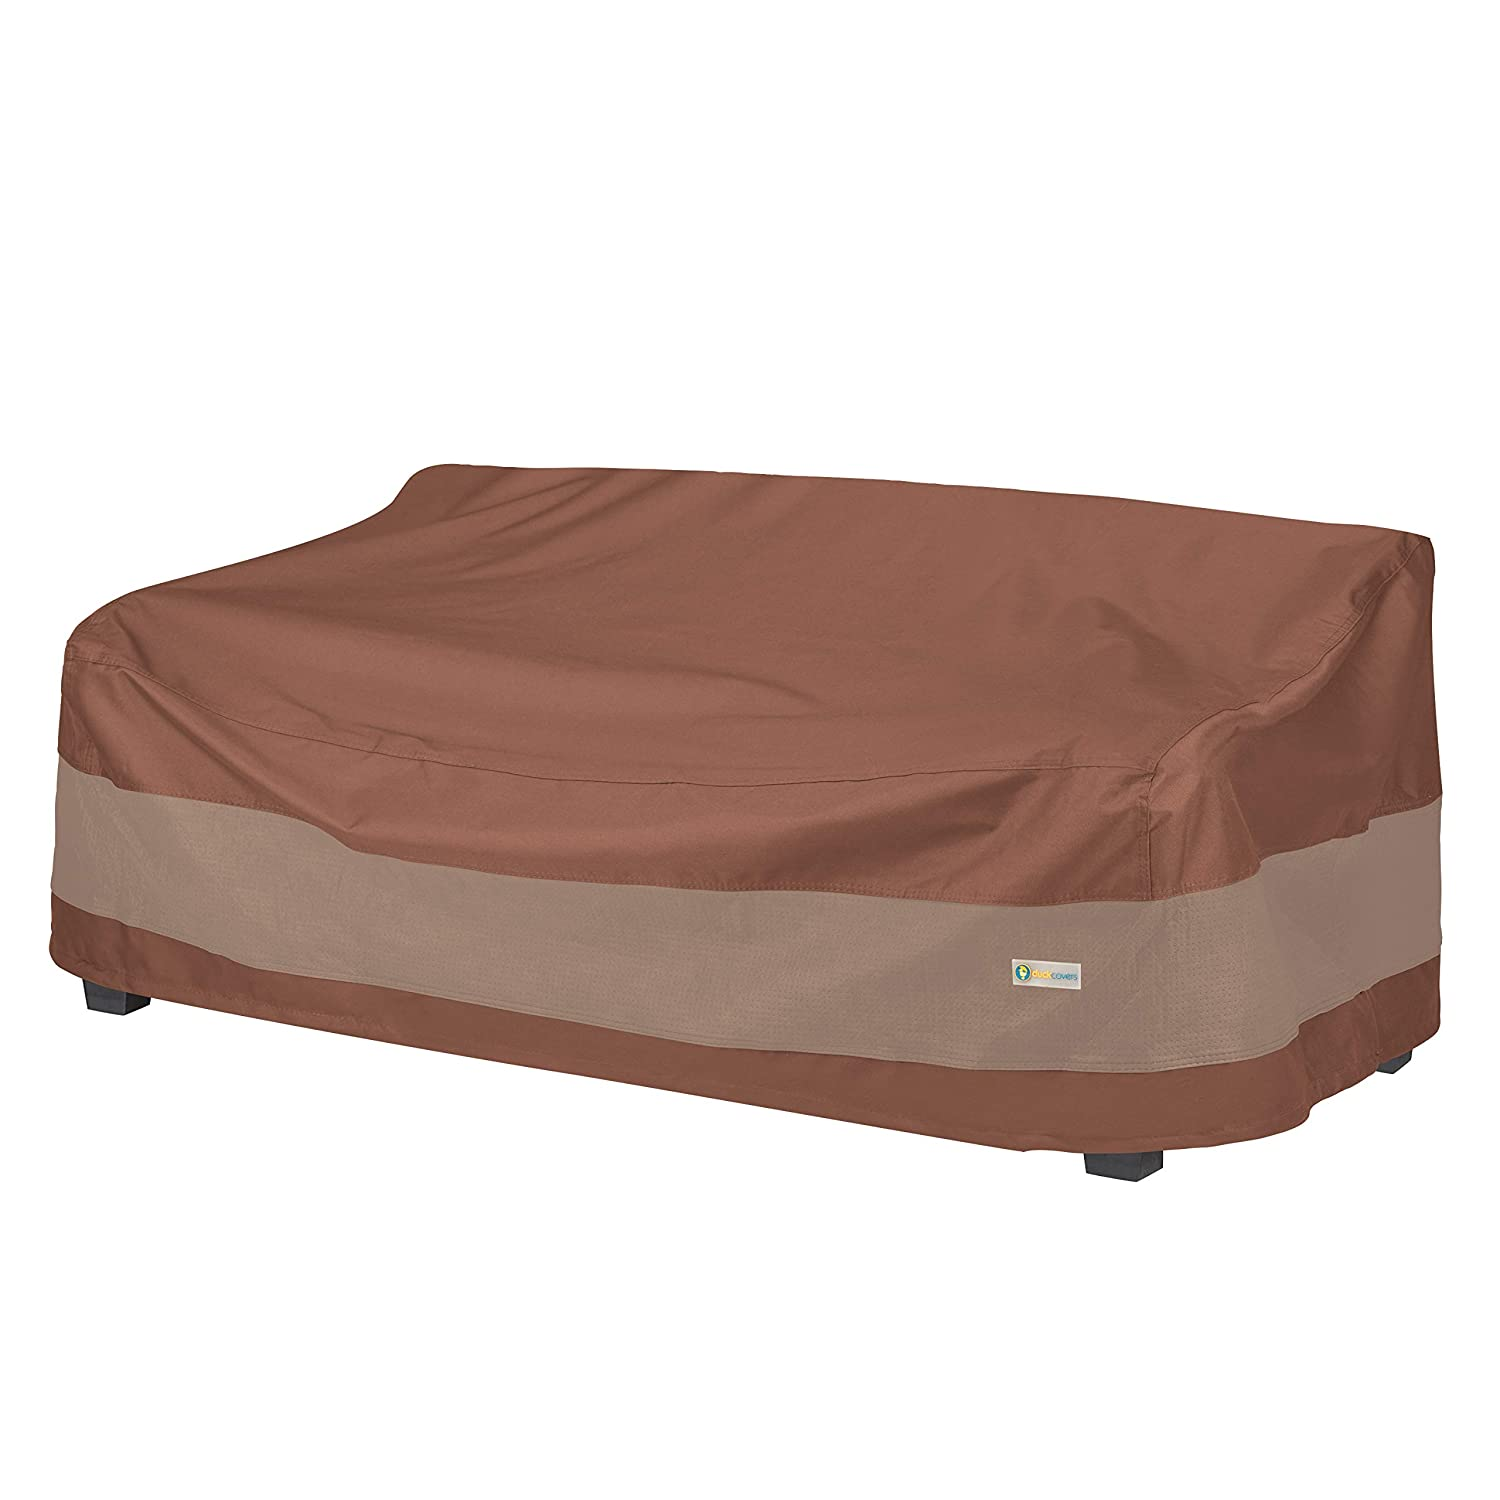 Duck Covers Ultimate Patio Sofa Cover, 79-Inch